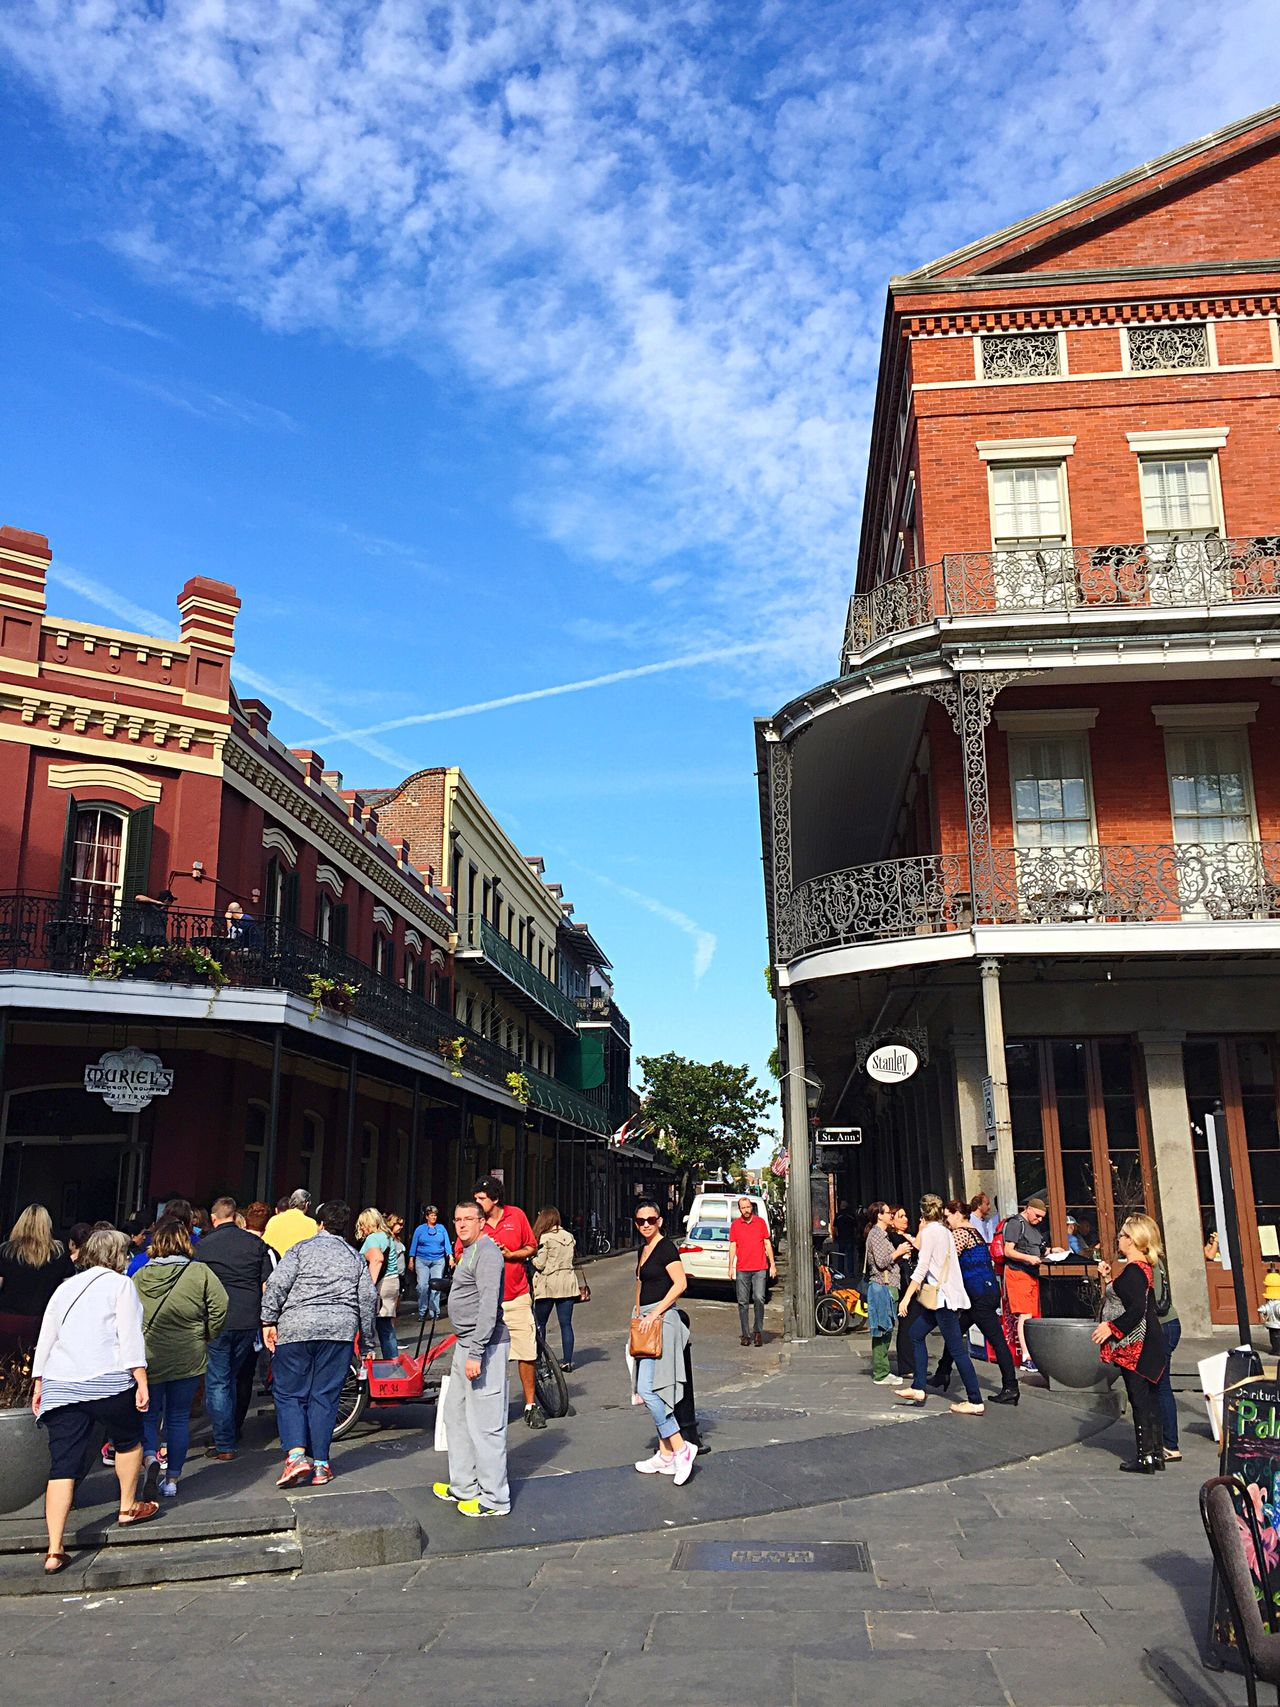 Building Exterior City Architecture Large Group Of People Sky Built Structure Real People Men Outdoors Women Day Adult Adults Only People Cityscape Jackson Square